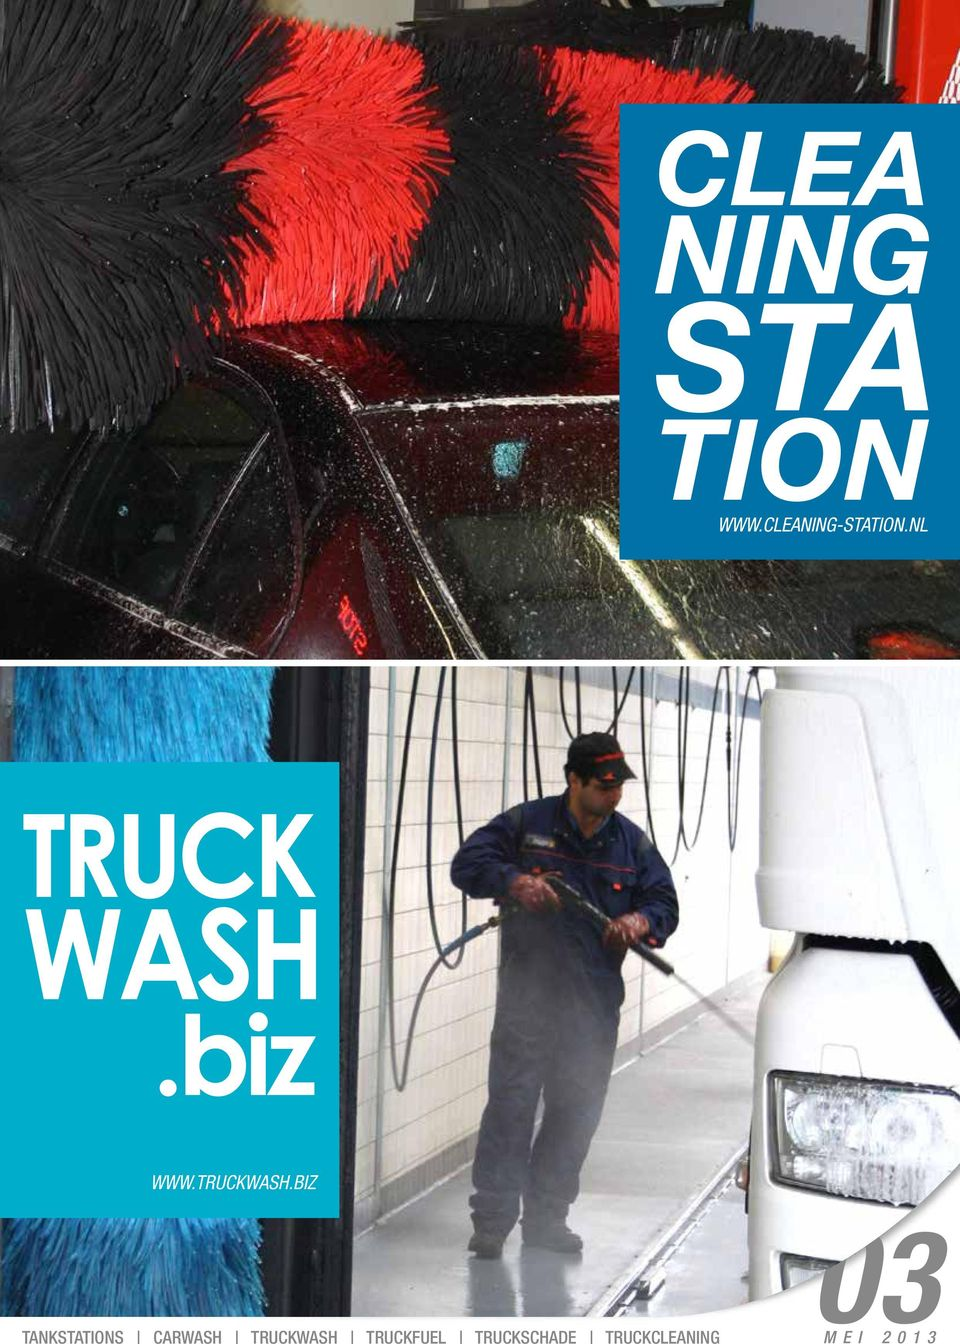 biz tankstations carwash truckwash